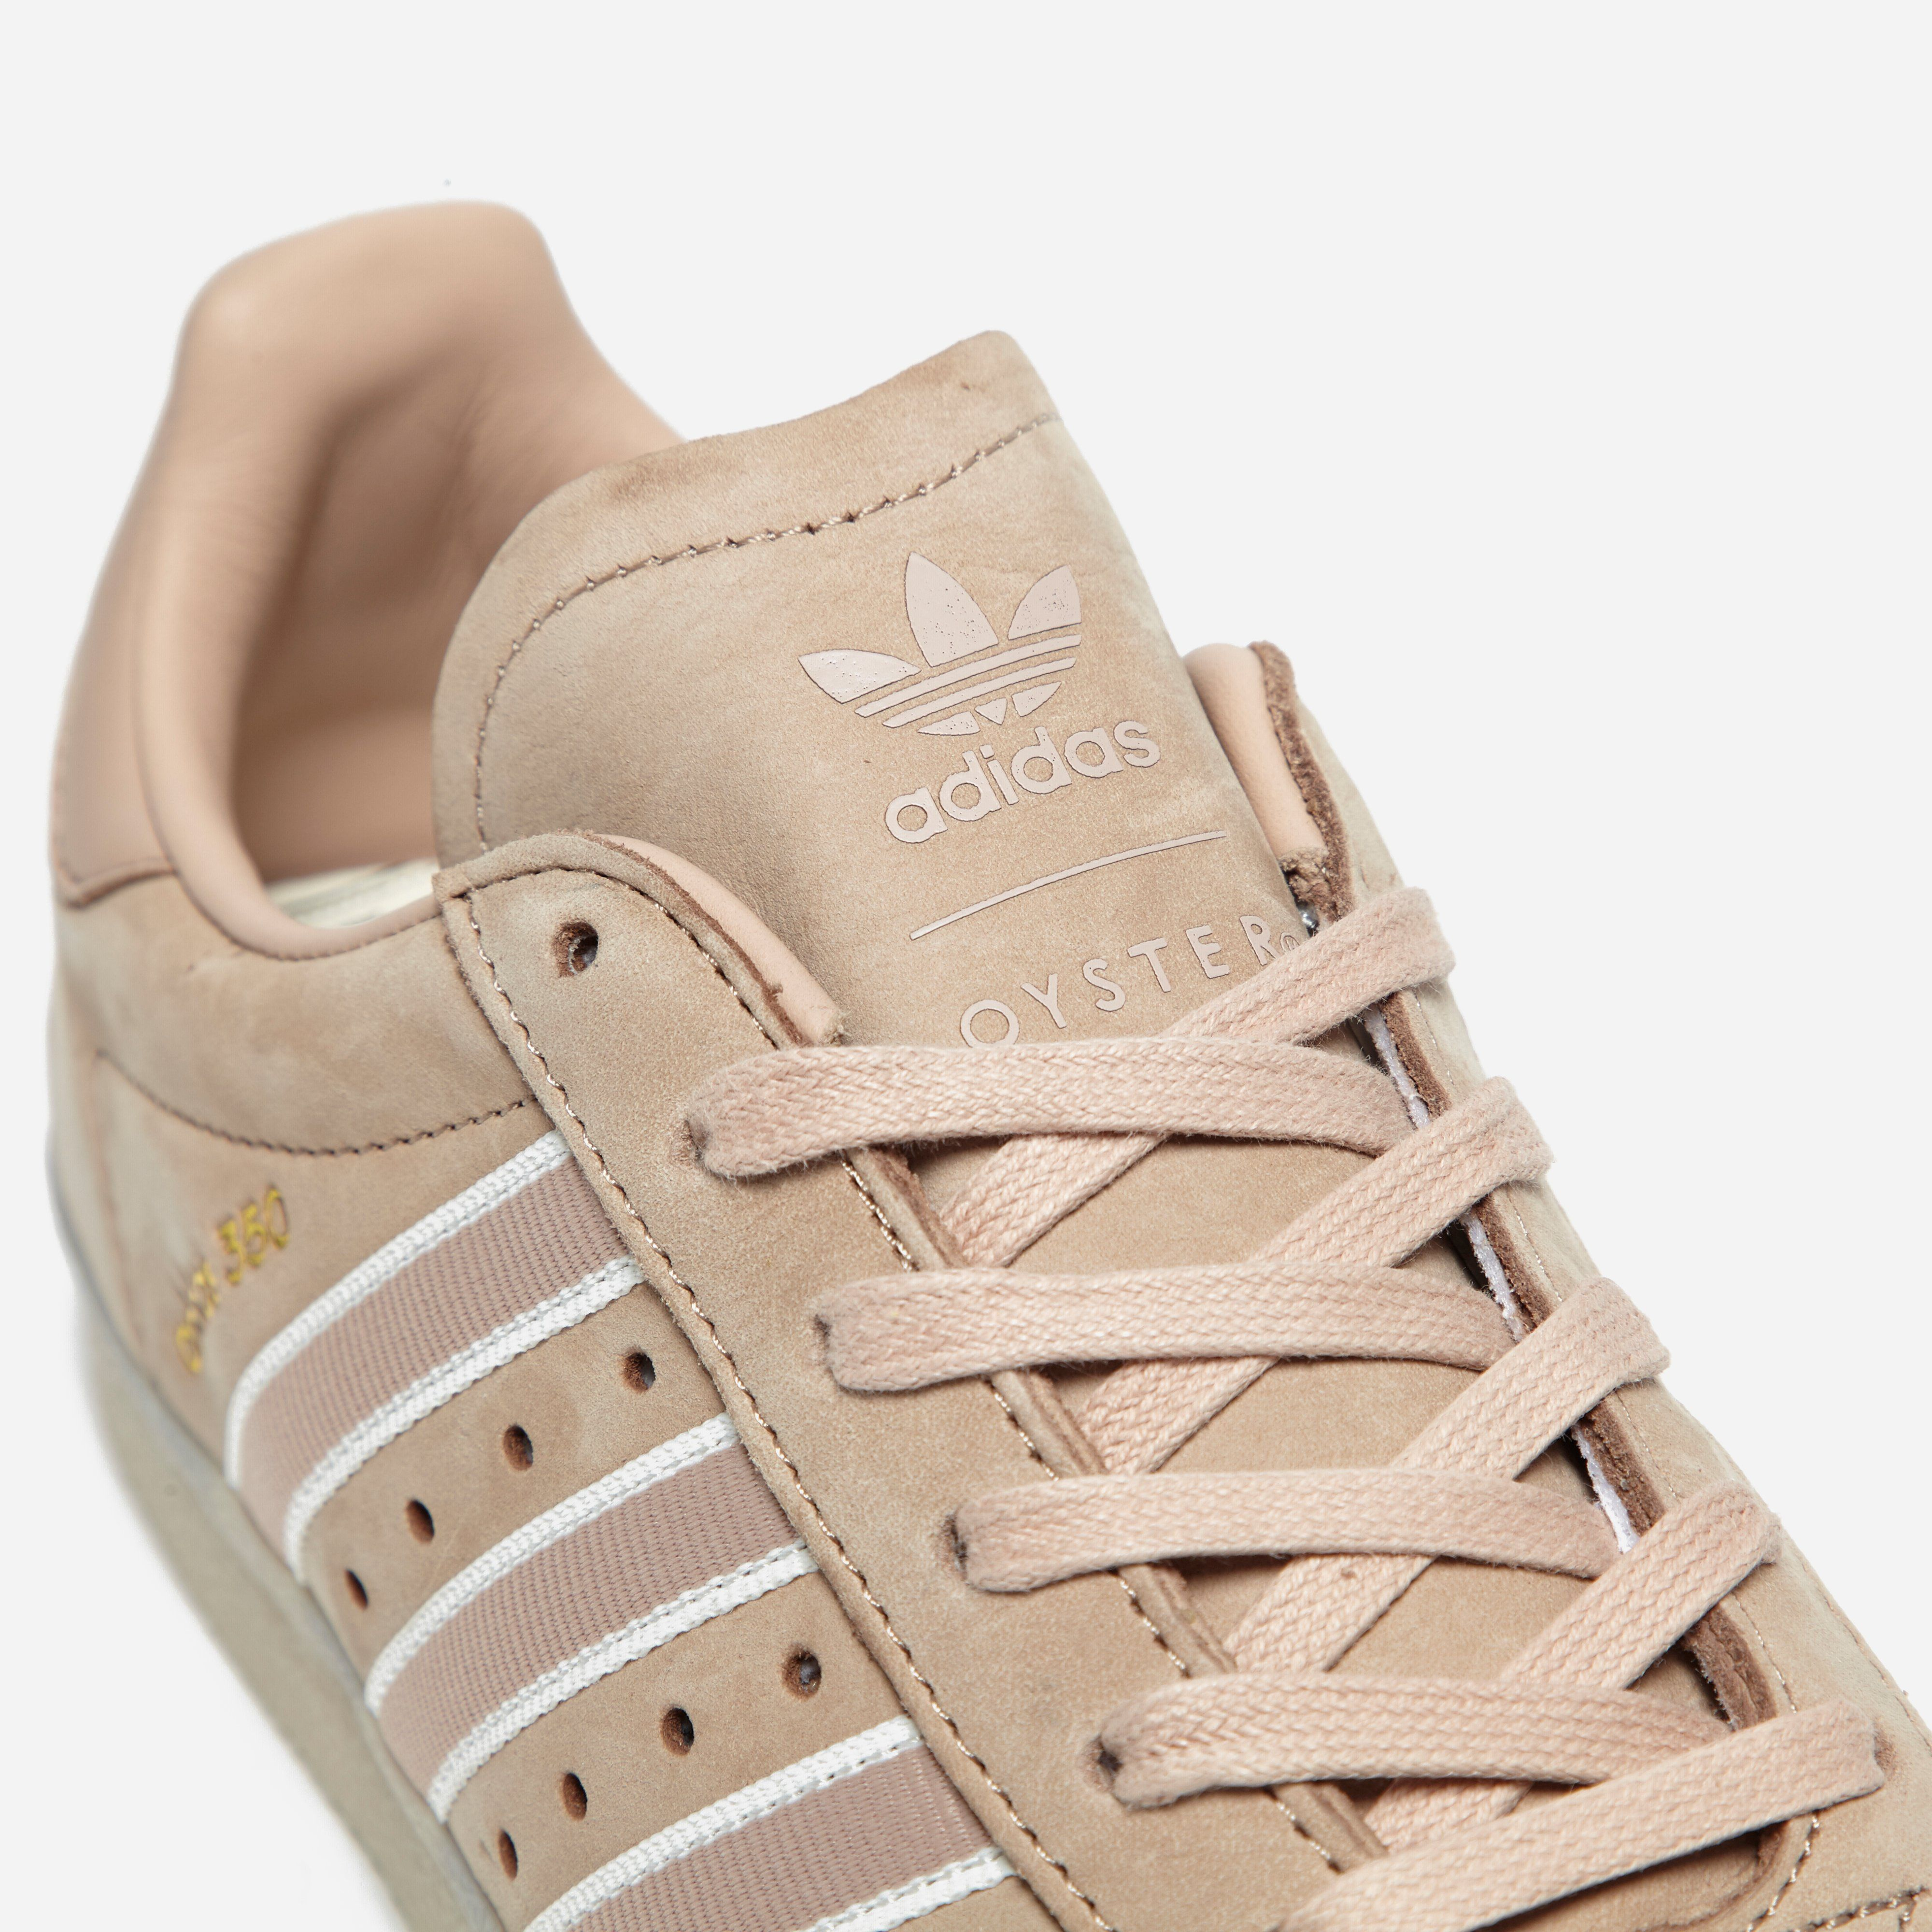 adidas Originals x Oyster Holdings 350